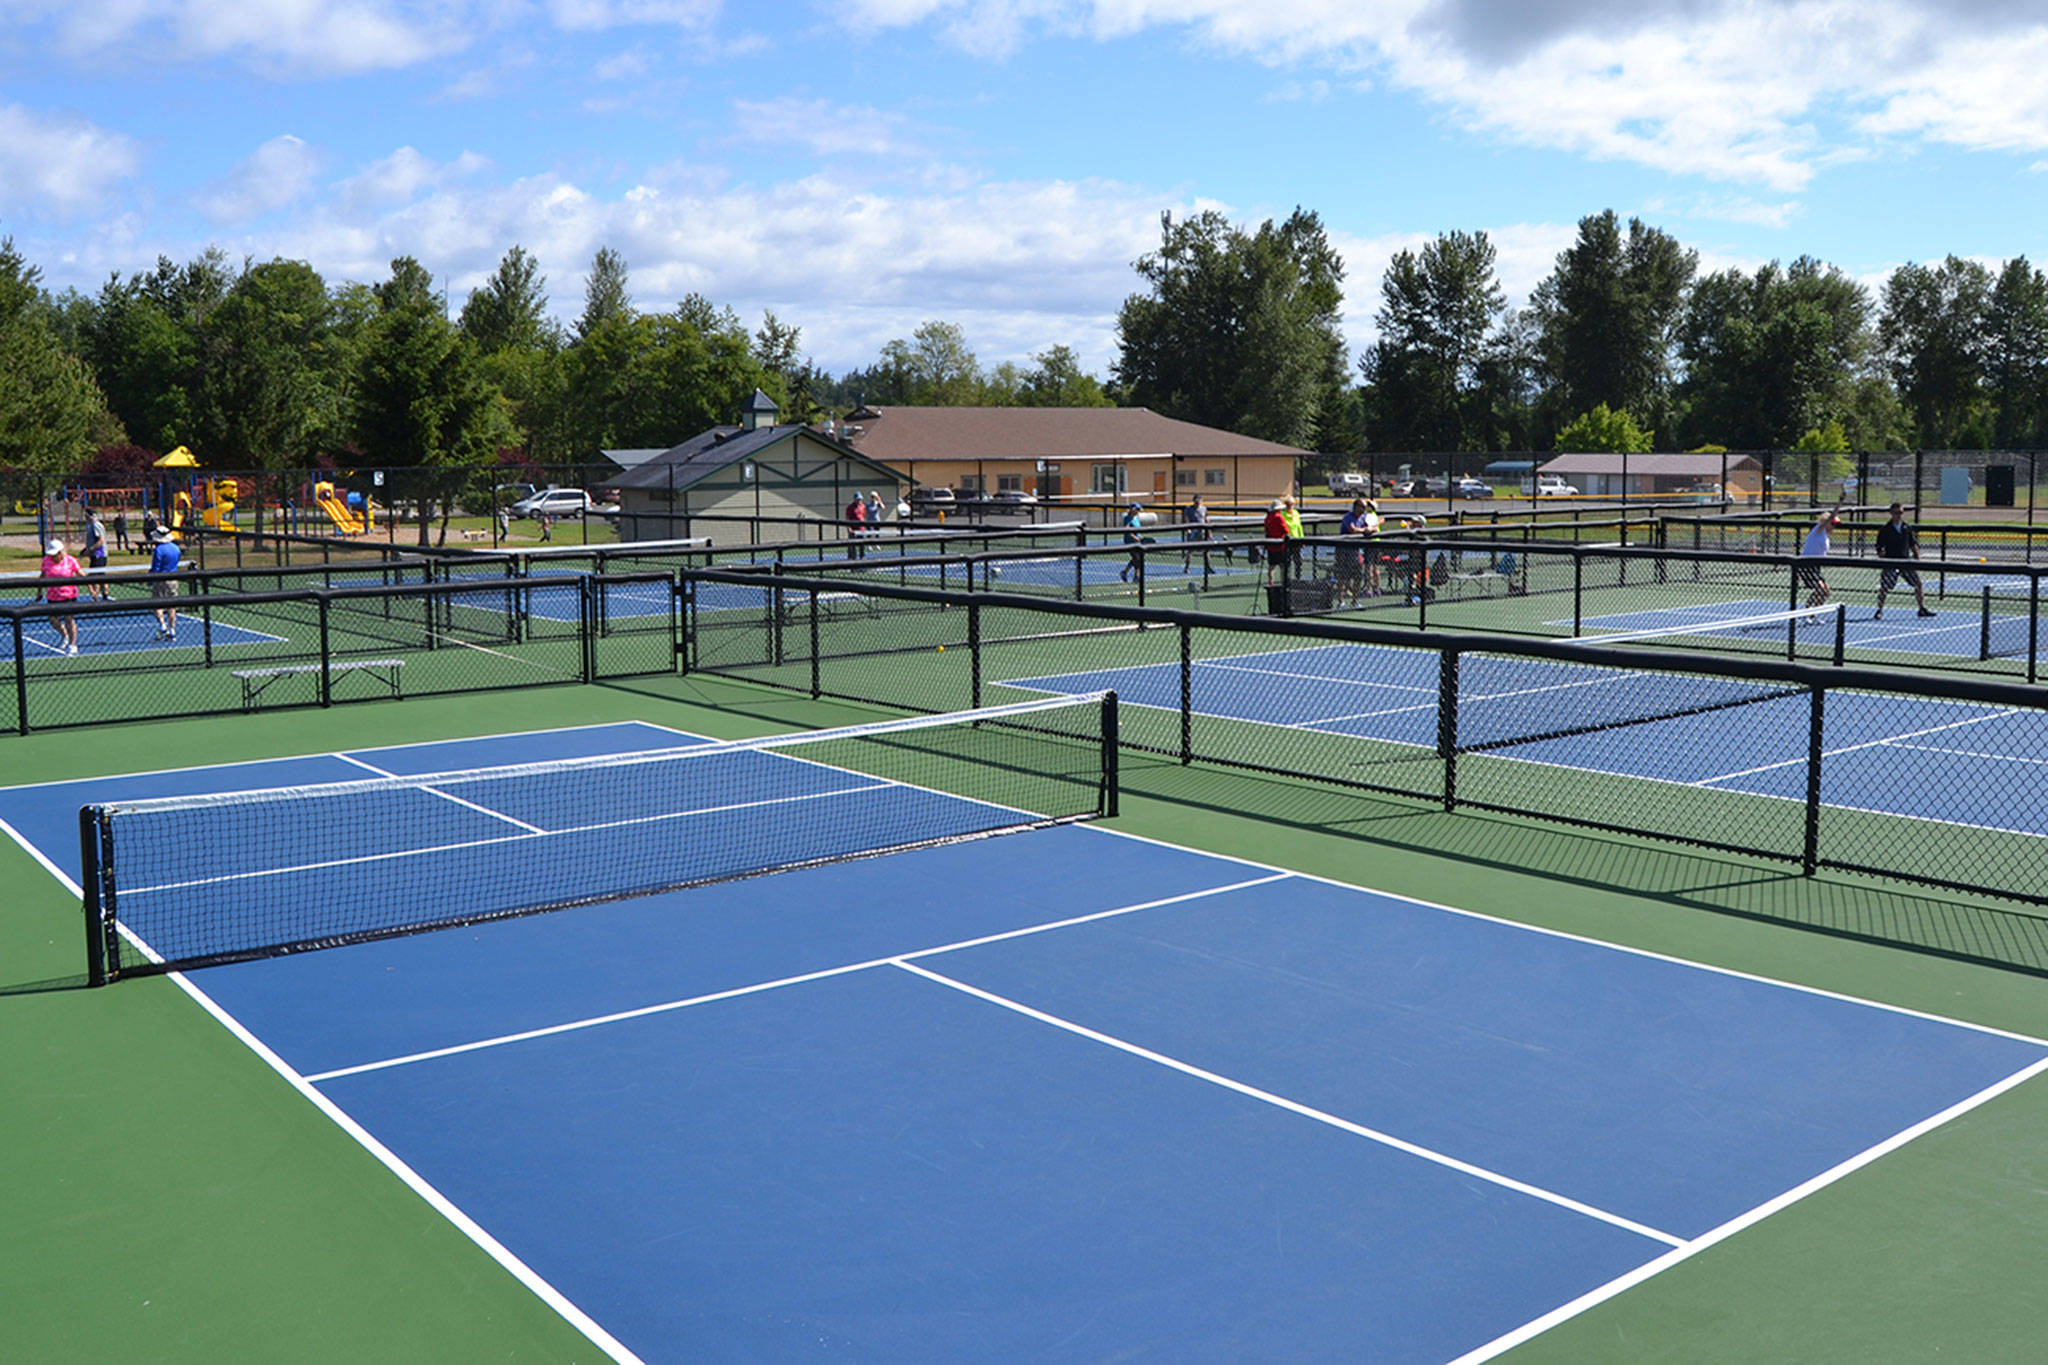 The newest addition to Carrie Blake Community Park, pickleball courts, opened to the public on June 28. Michael Dashiell/Olympic Peninsula News Group